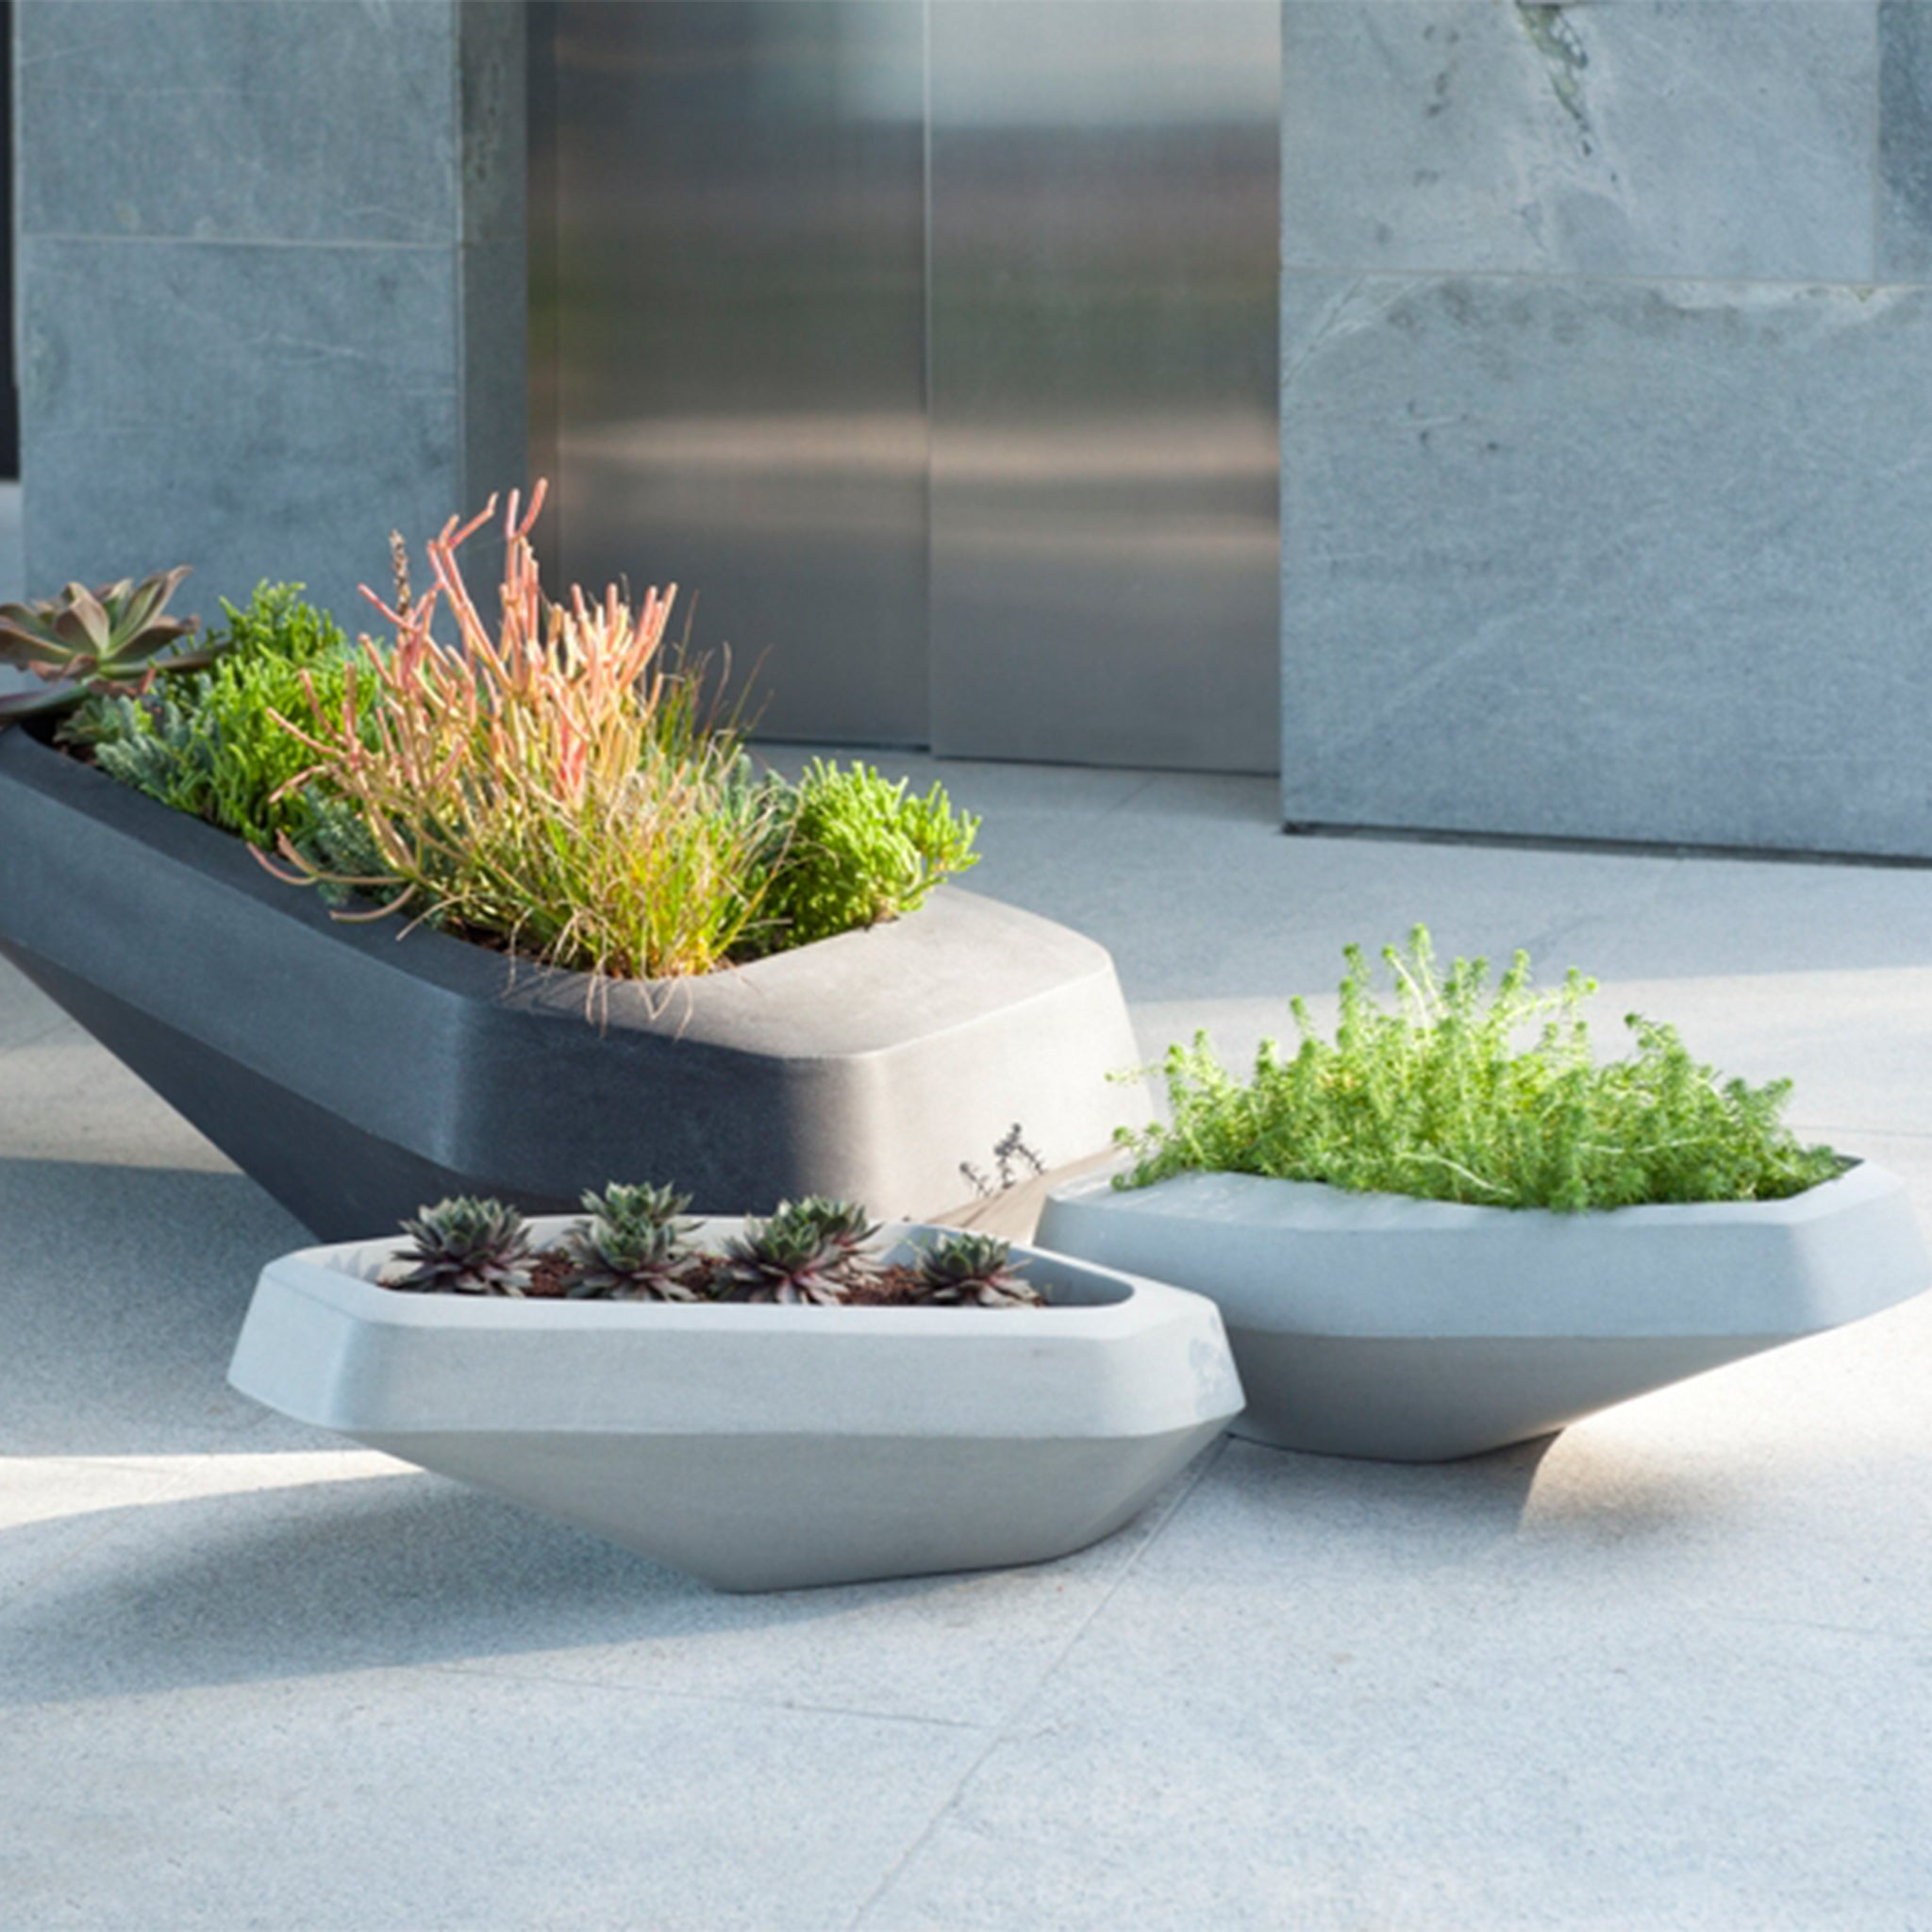 Steen Small planters SAOTA Designer Furniture Sku: 621-100-10006